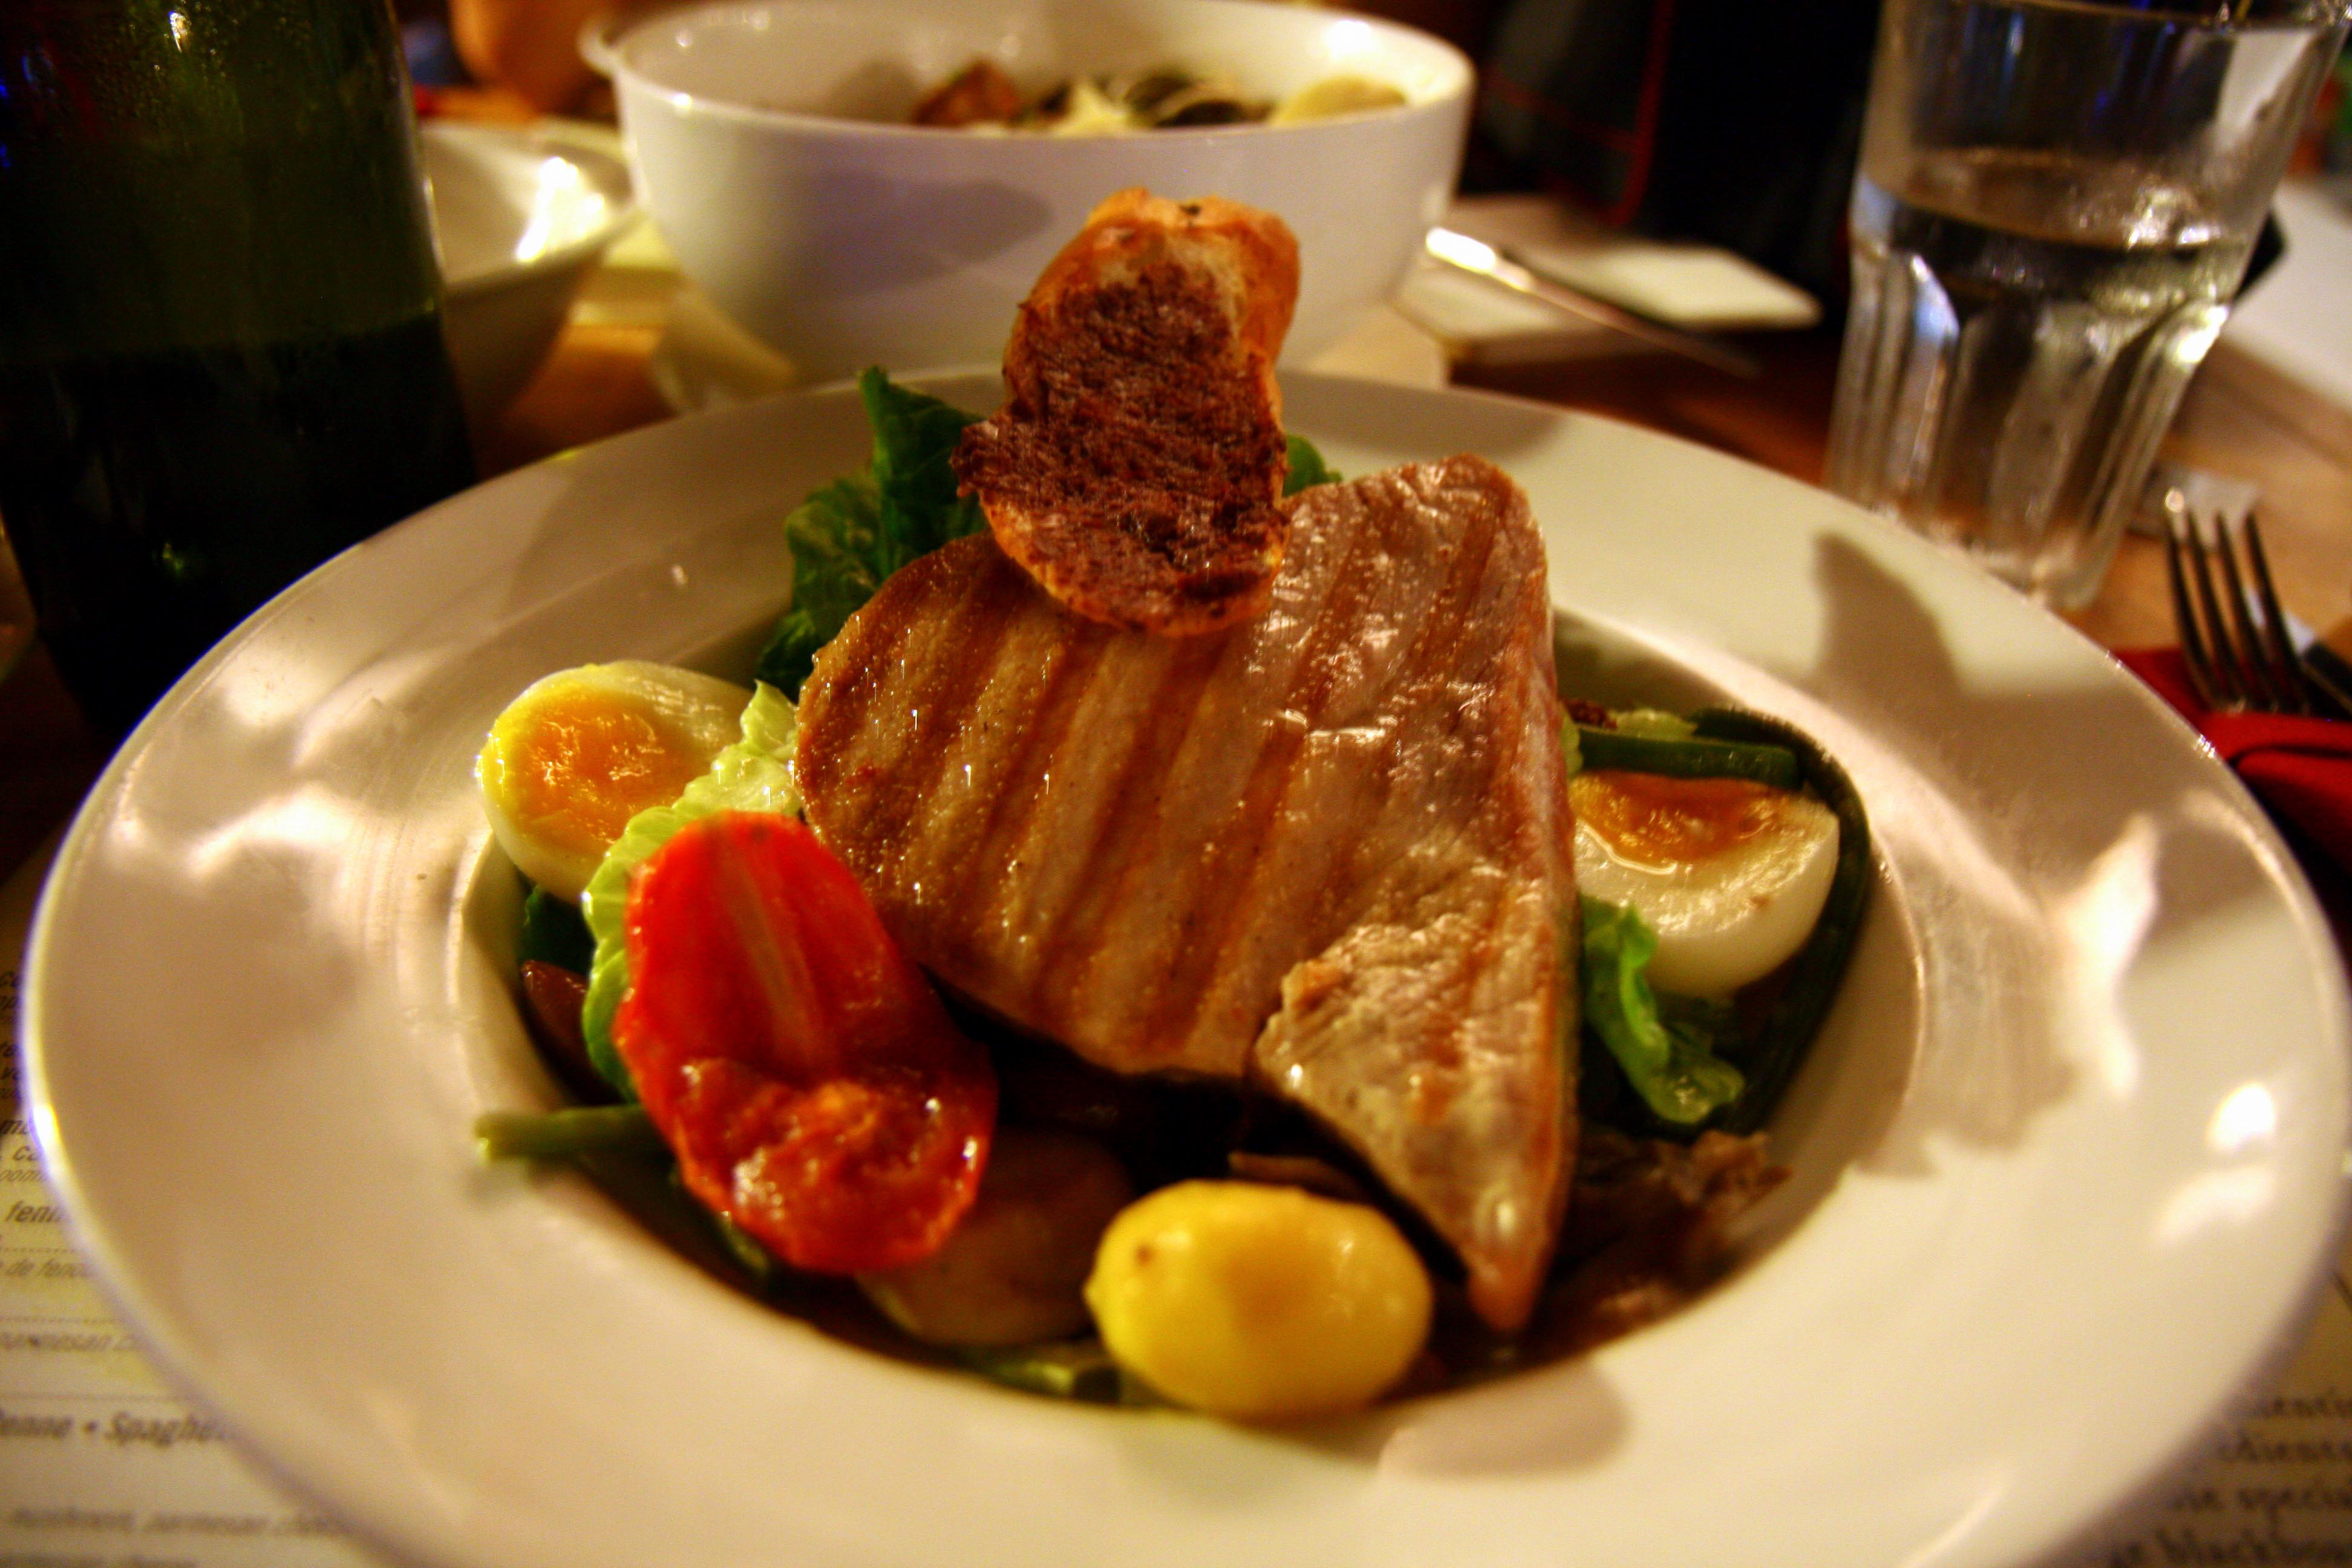 ... de thon, salade nicoise – seared tuna with nicoise salad – $29